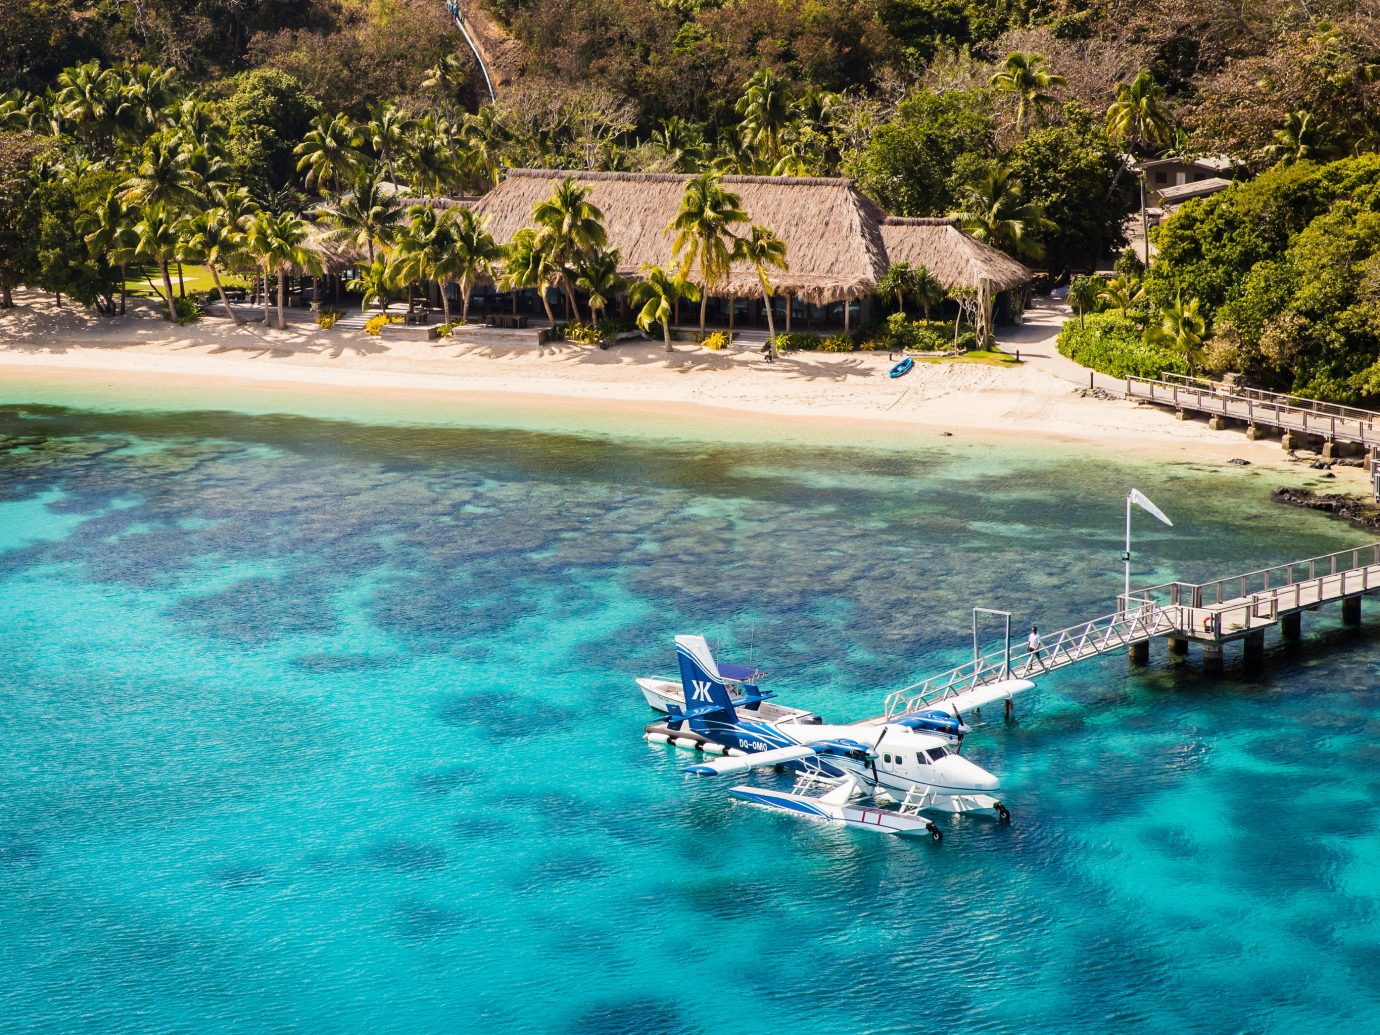 Boutique Hotels Hotels Luxury Travel water tree Sea outdoor coastal and oceanic landforms body of water Boat Coast Ocean bay Lagoon Pool tropics shore inlet caribbean swimming pool vacation water resources tourism Island leisure cove Beach Lake Resort resort town water feature landscape sky swimming cape pond surrounded